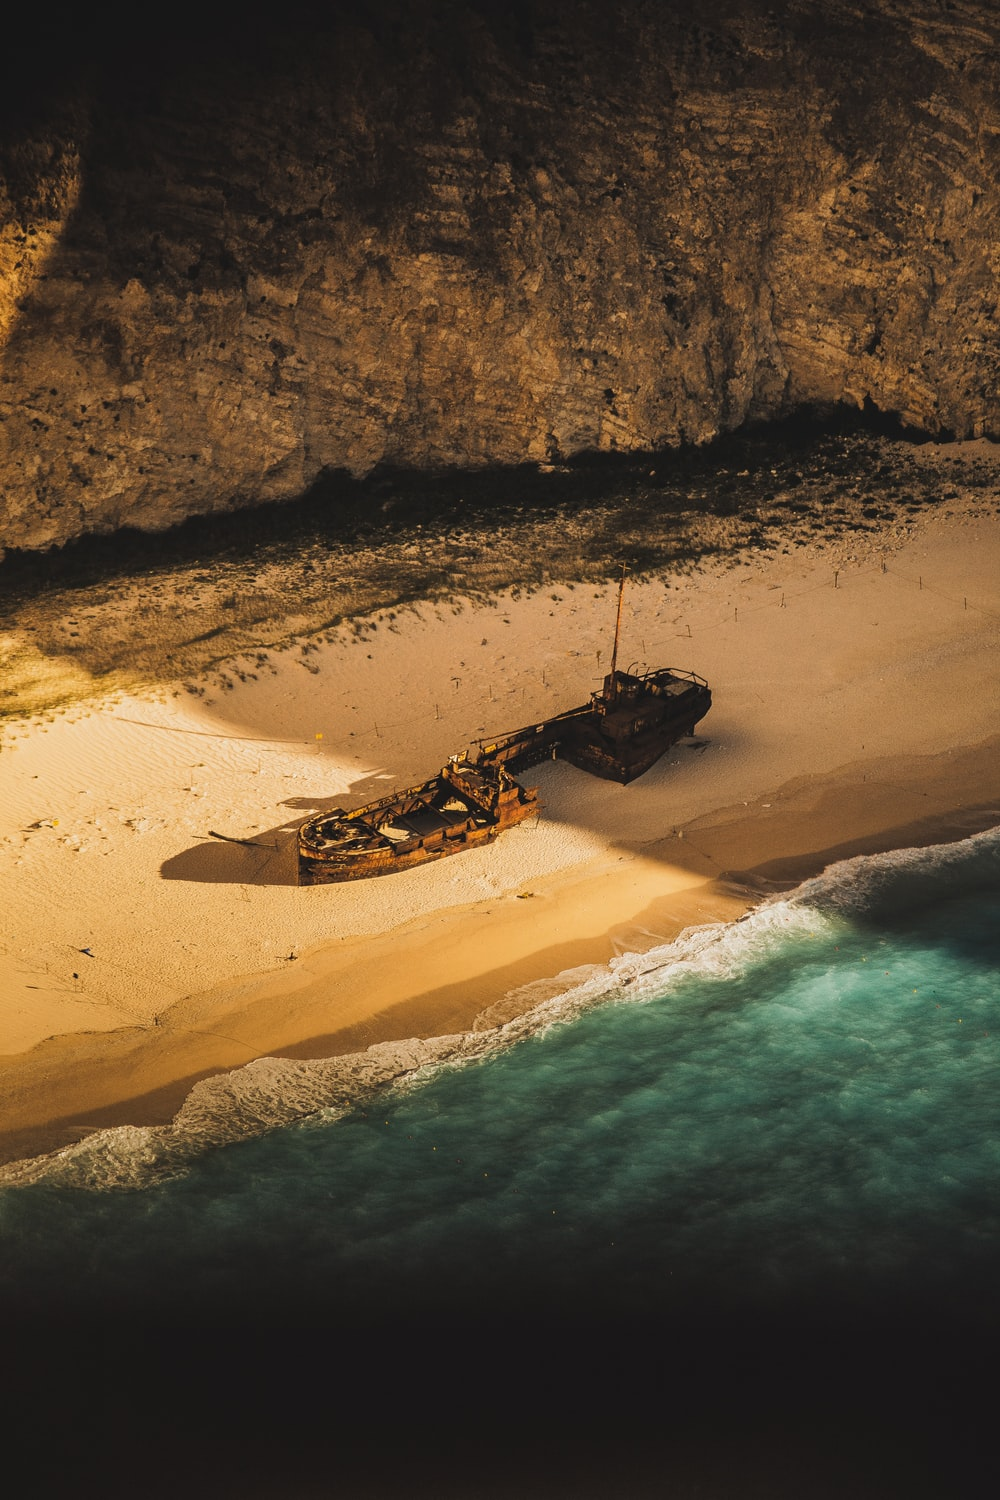 wrecked and abandoned ship on shore of an island during golden hour